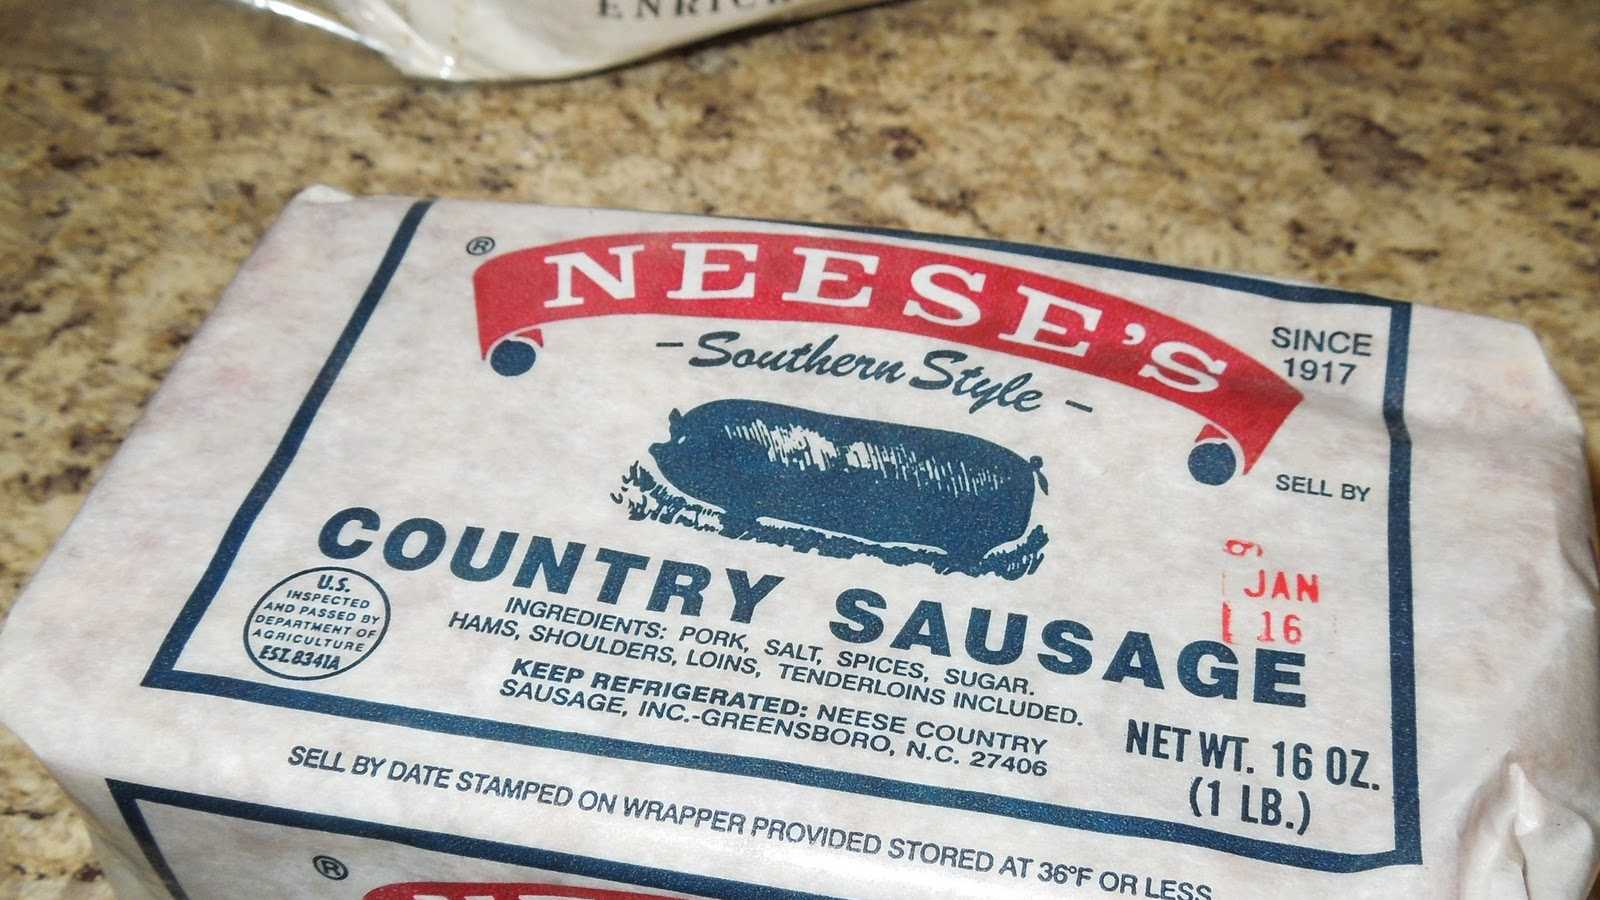 1. Neese's Country Sausage